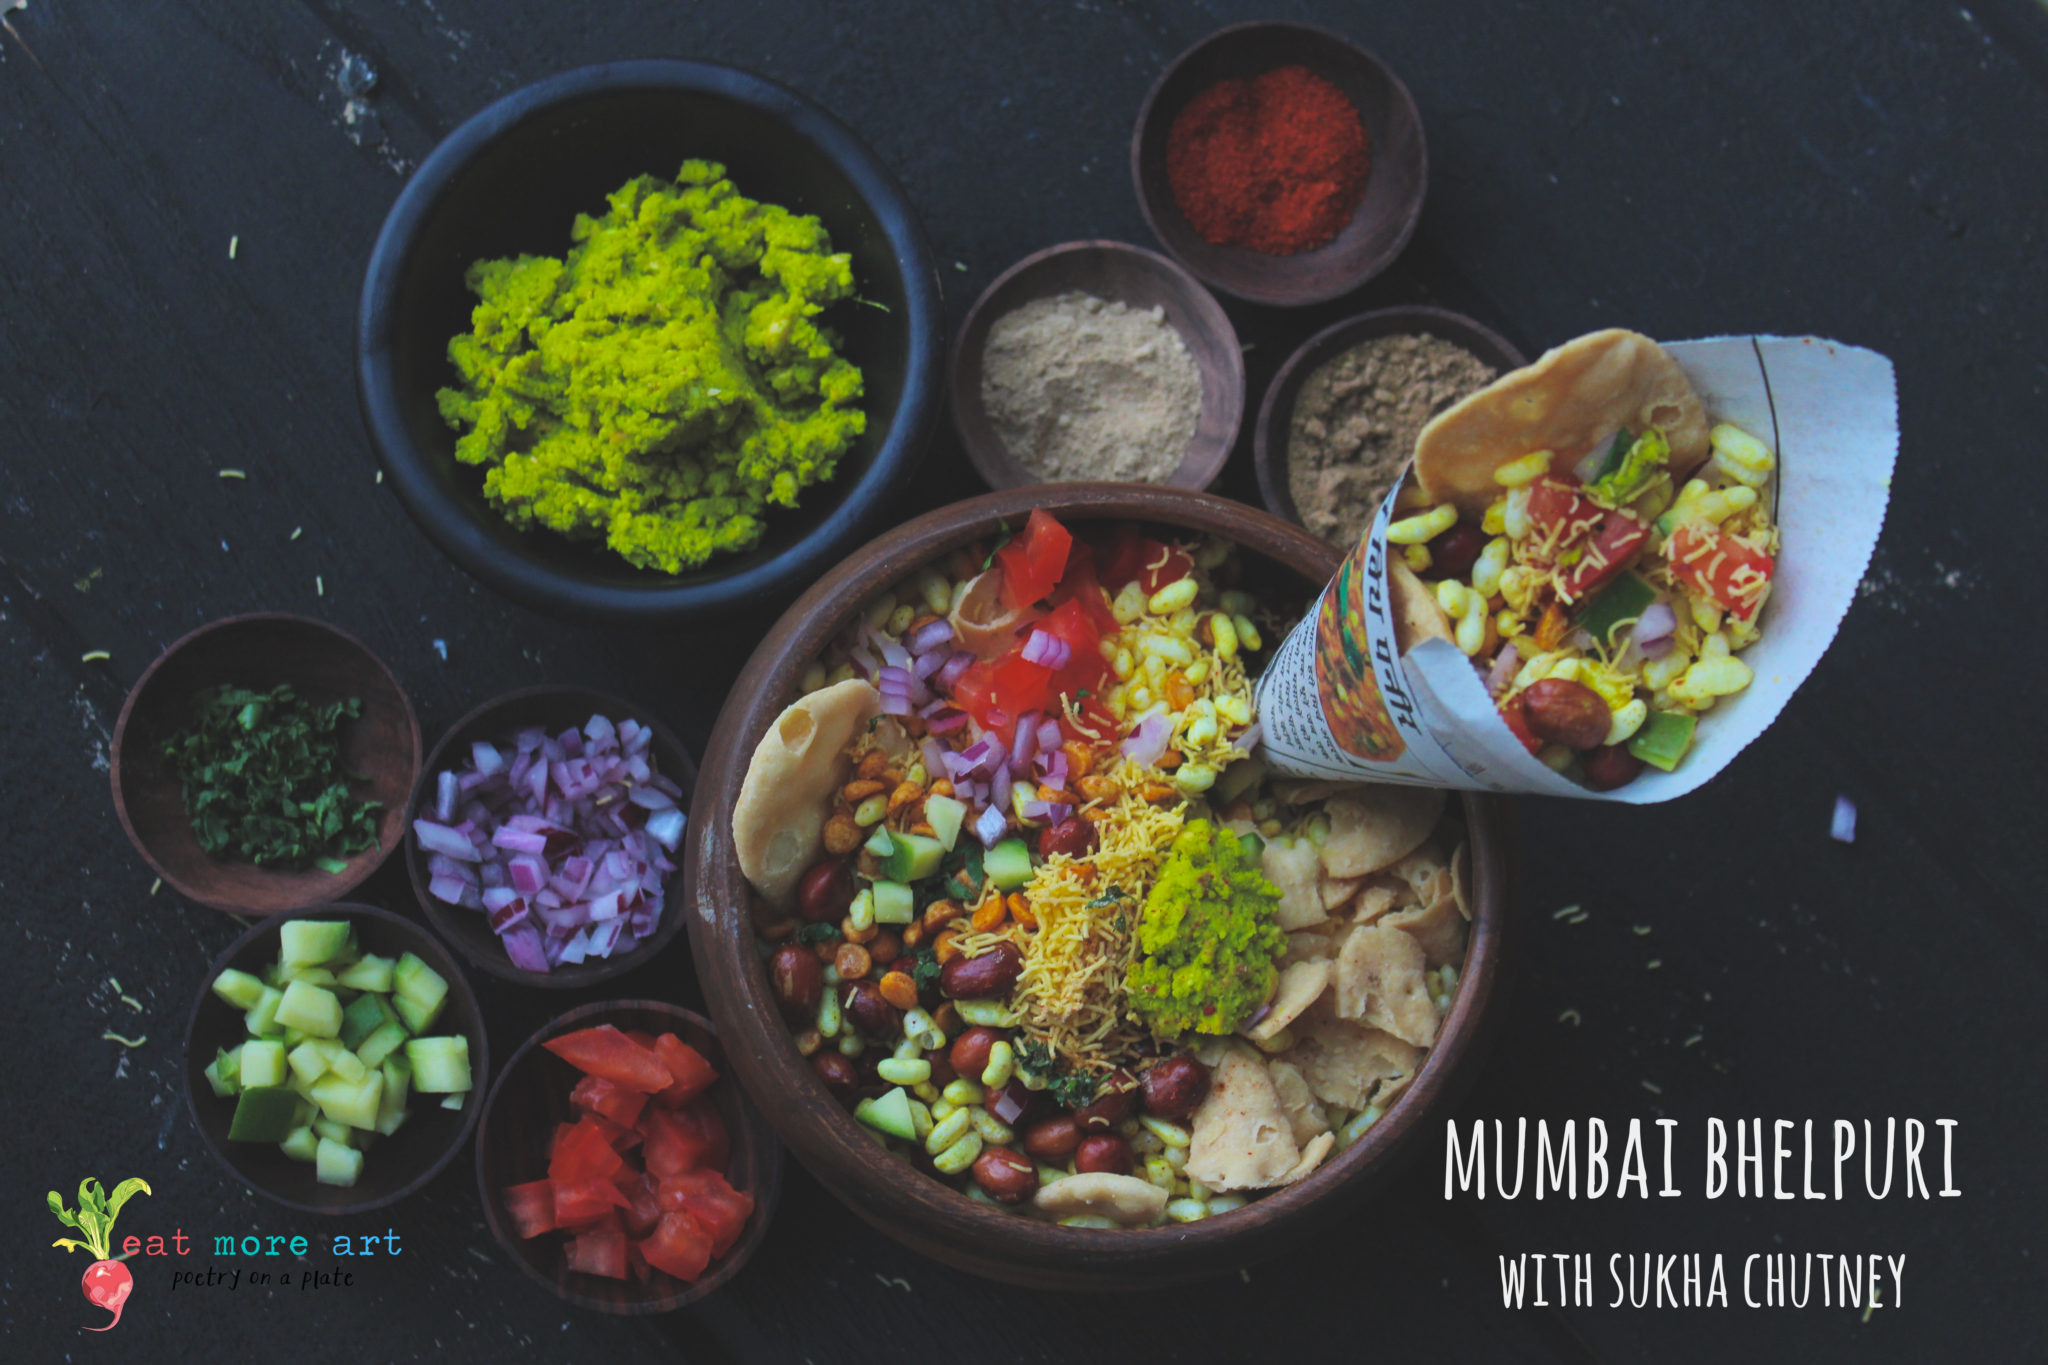 Mumbai Bhelpuri with Sukha Chutney | Street food of Mumbai | Eat More Art